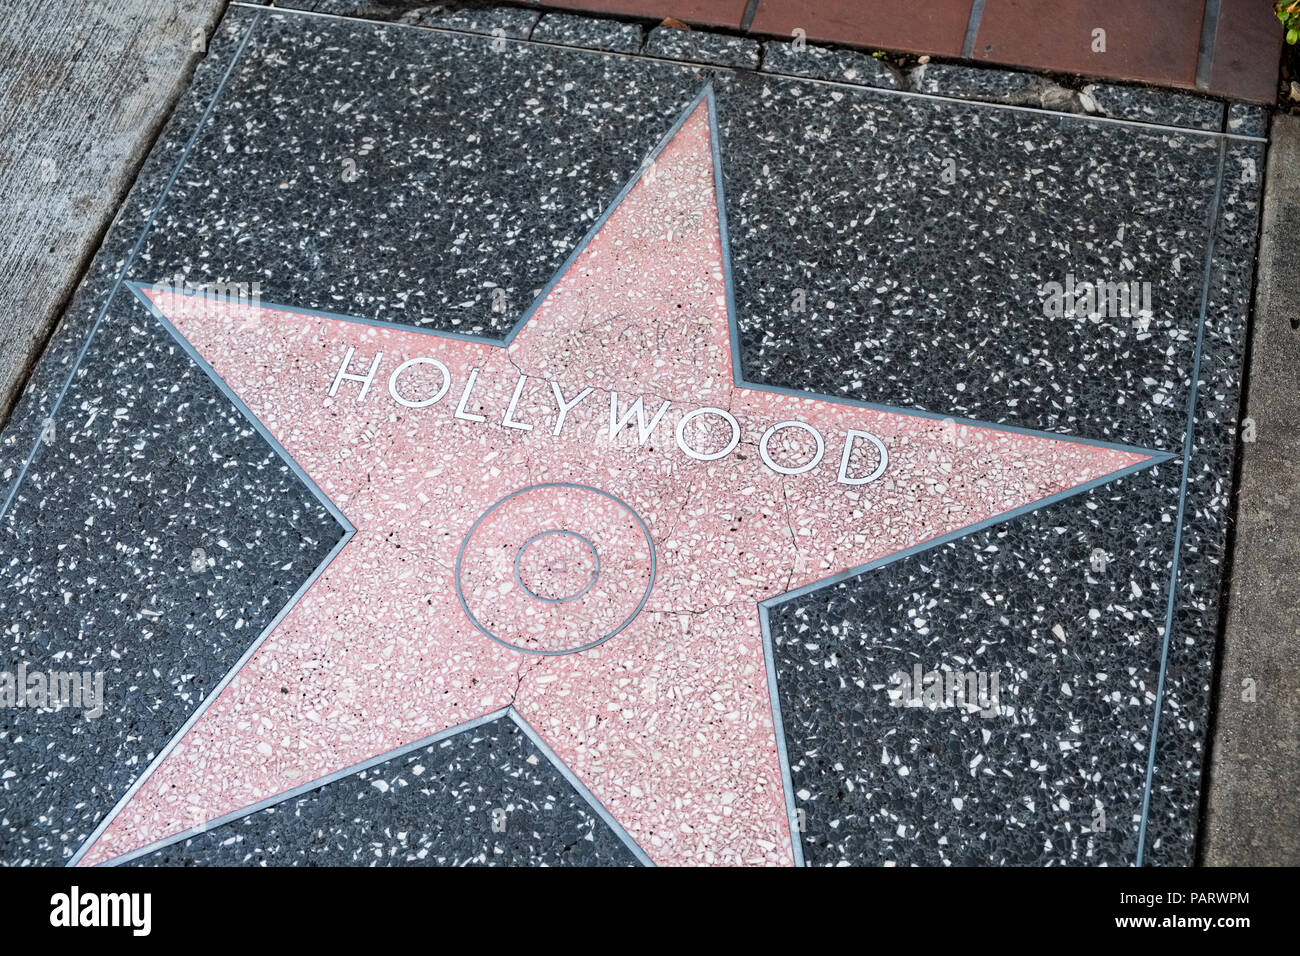 Hollywood star on the Walk of Fame, Hollywood Boulevard, Los Angeles, LA, California, USA - Stock Image